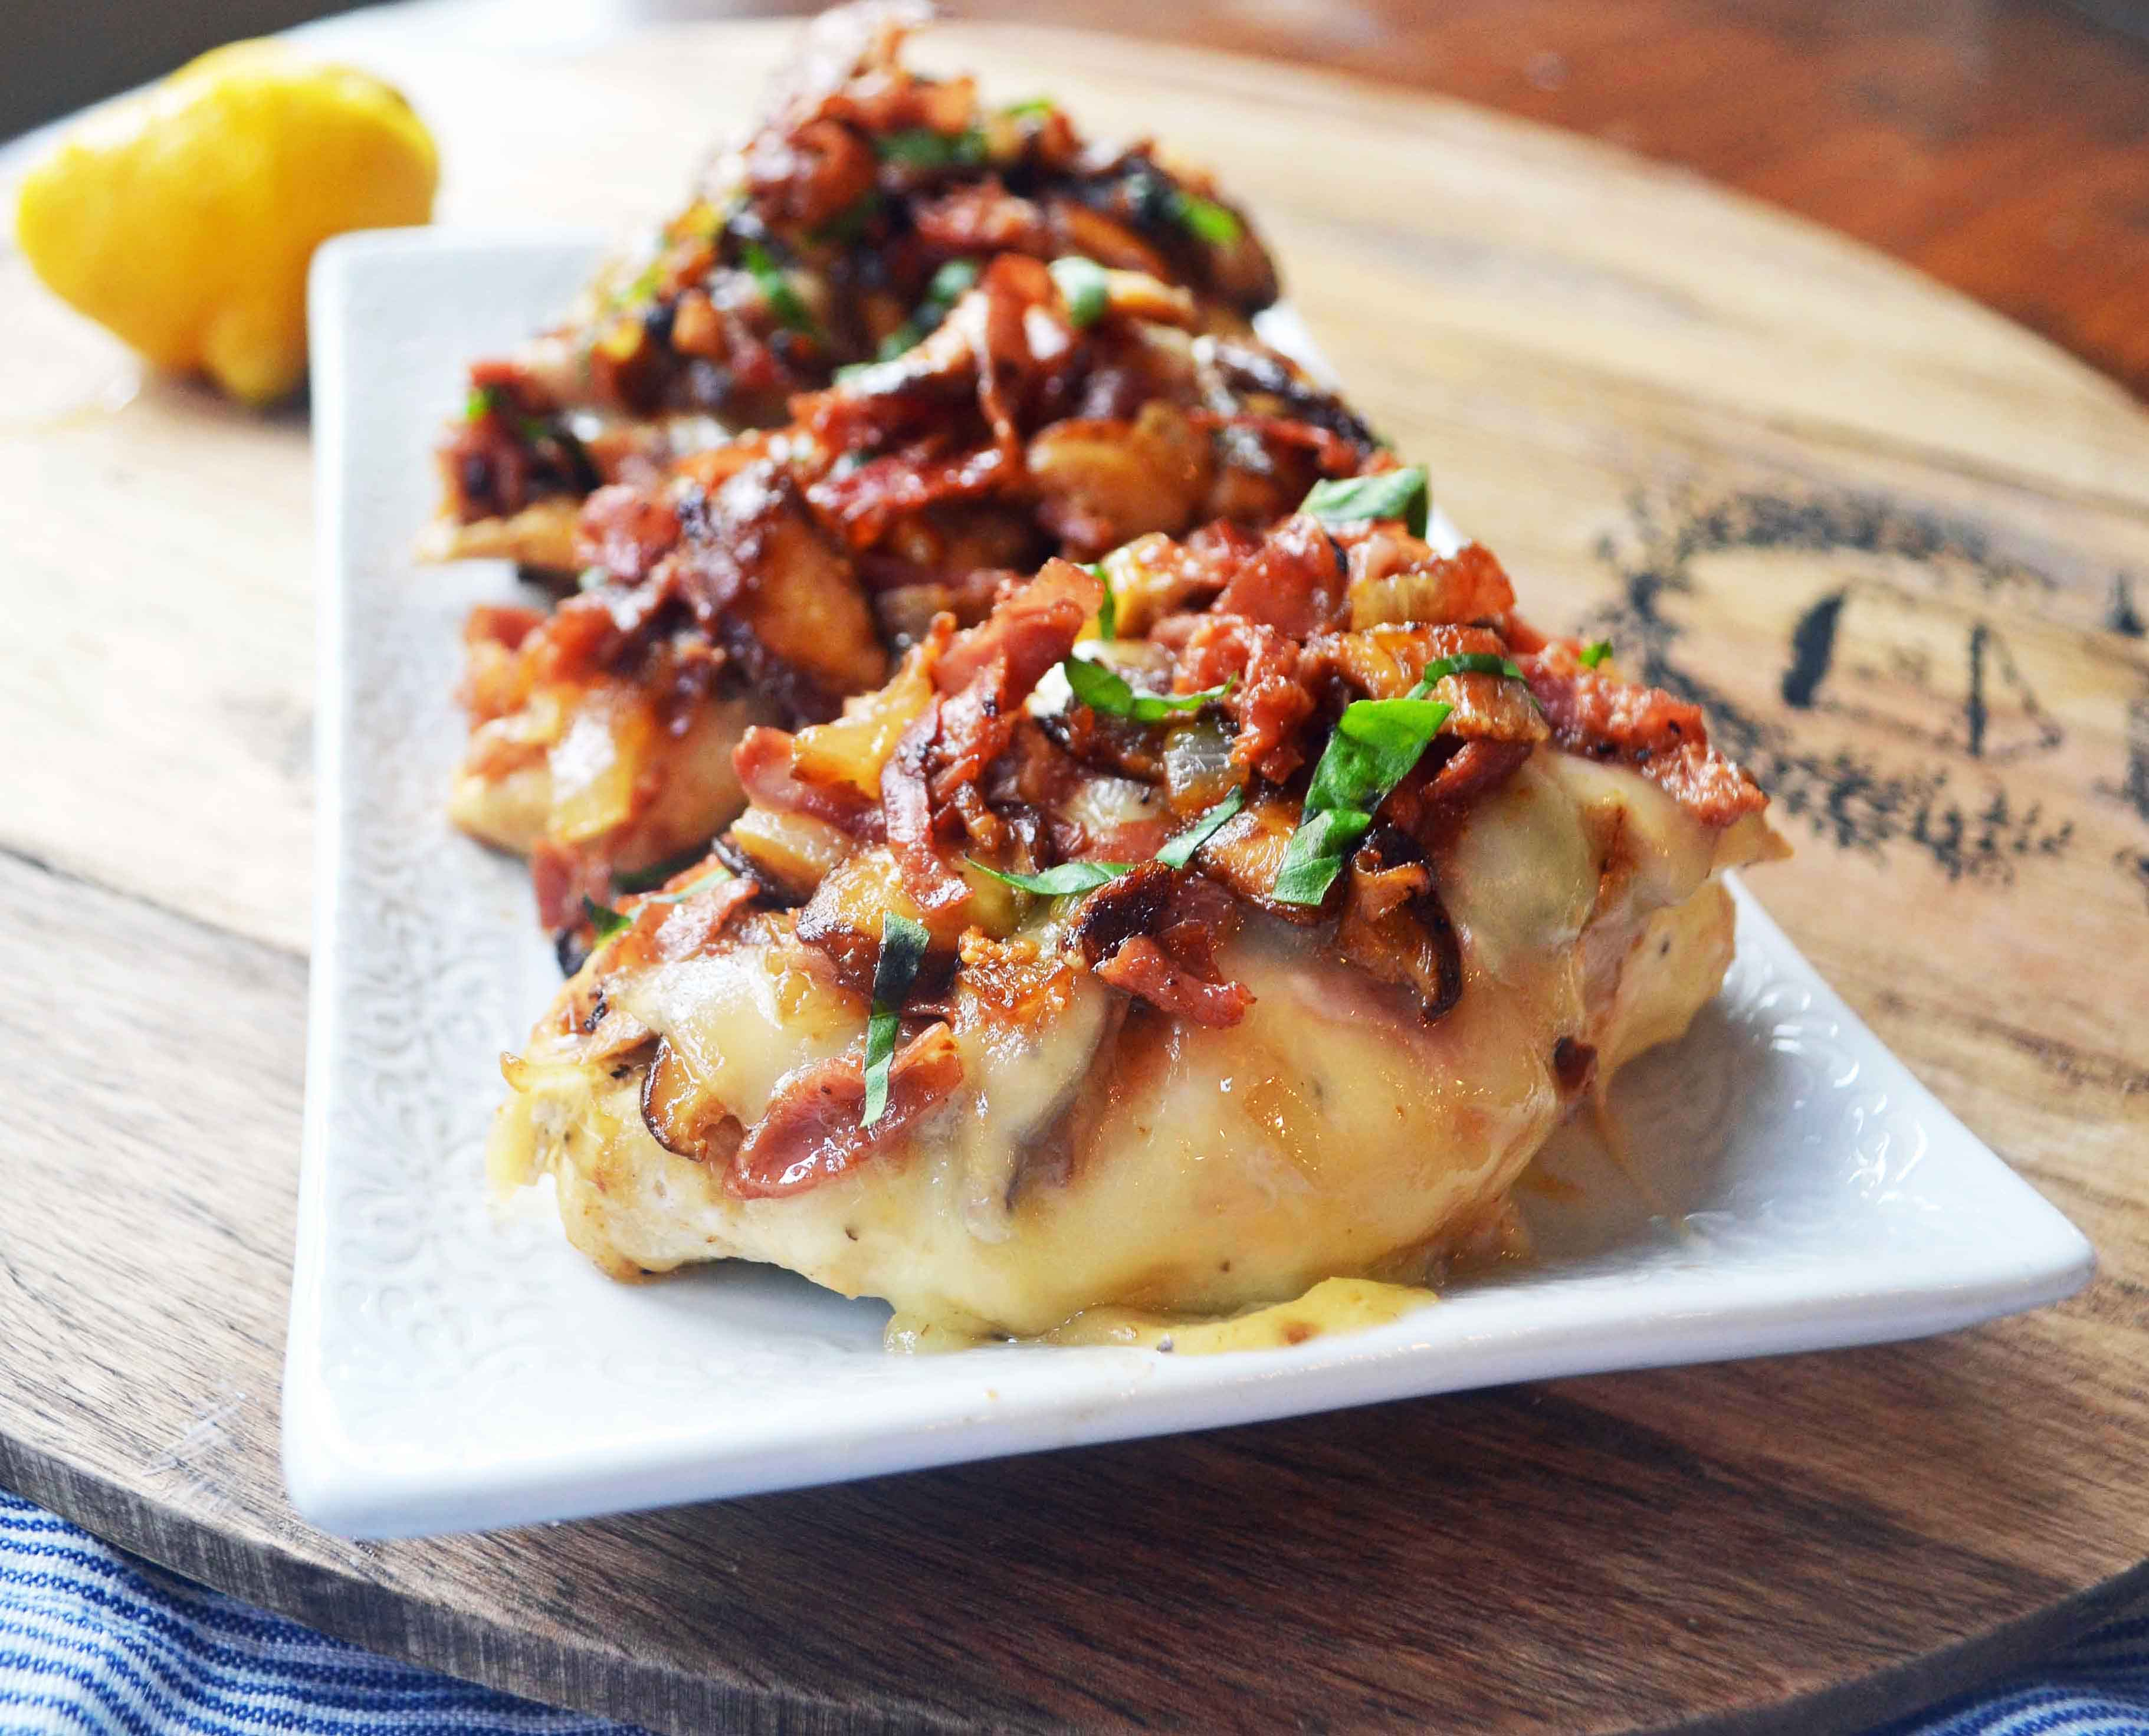 Chicken Rosa Maria by Modern Honey. Chicken breast sauteed with butter, onions, garlic, and mushrooms. Topped with crispy prosciutto and fontina cheese. A Carrabba's Pollo Rosa Maria copycat recipe. www.modernhoney.com